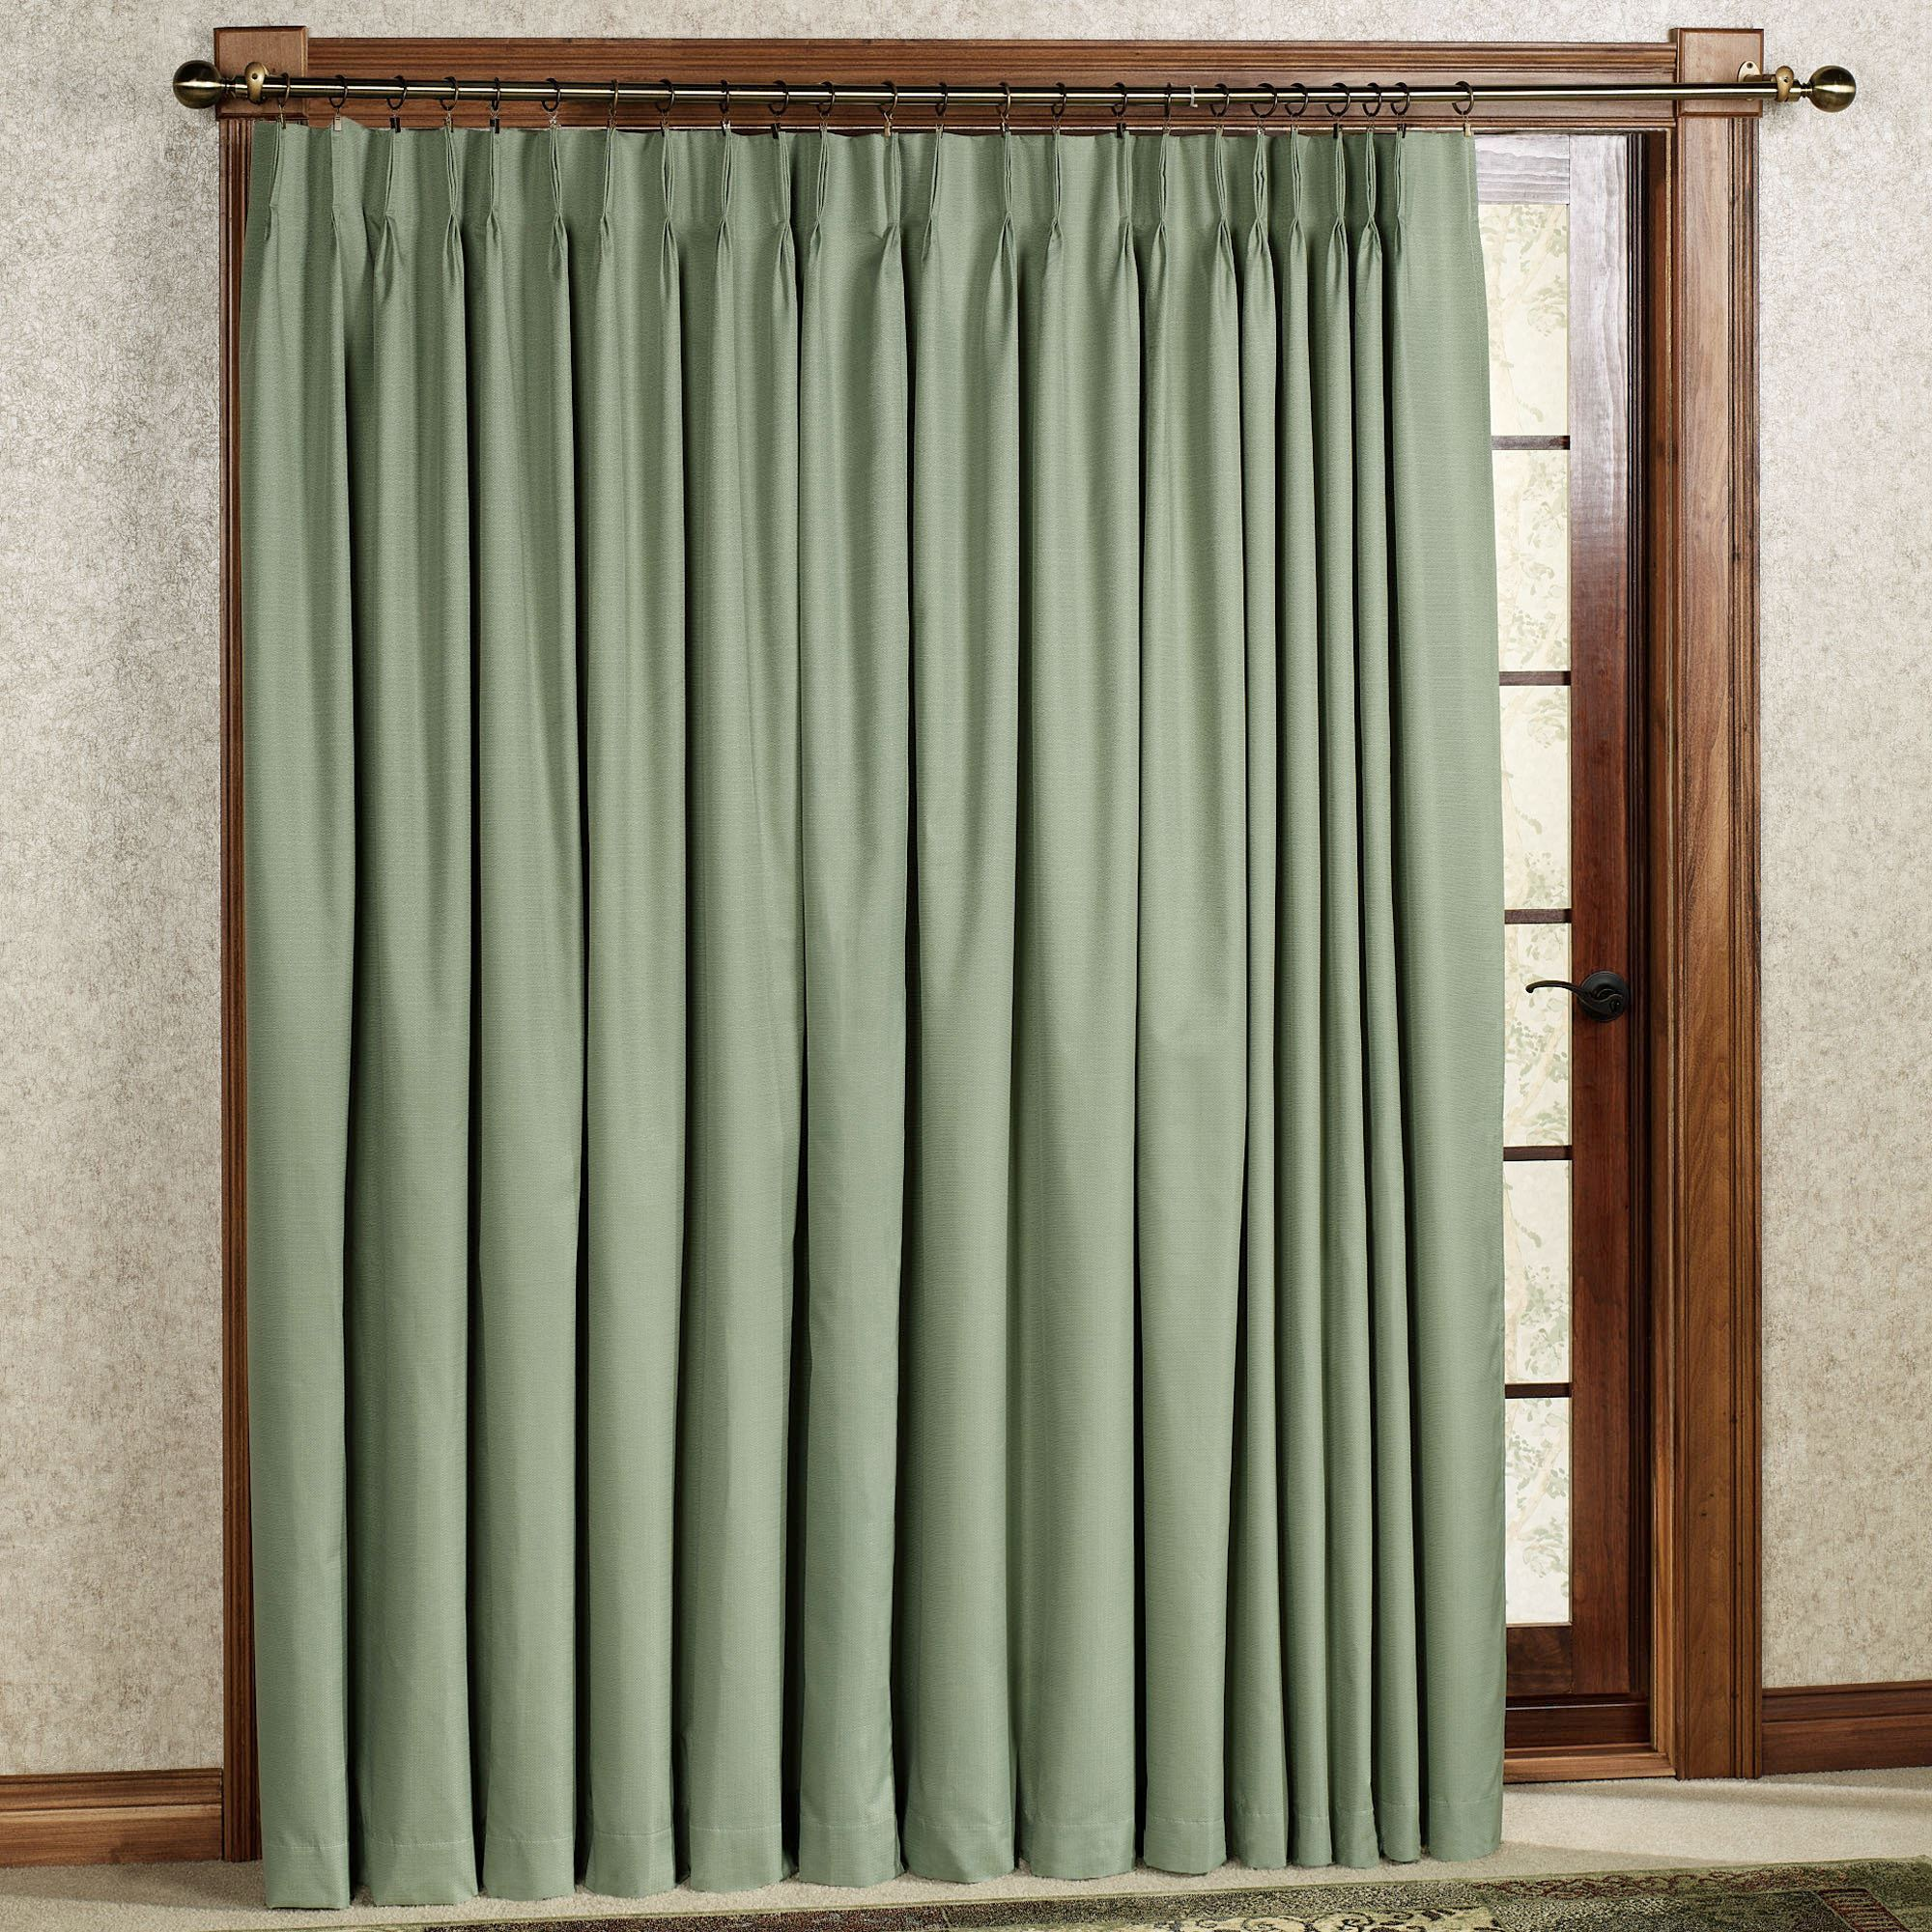 curtain pinchpleat curtains pleat pinch osdin